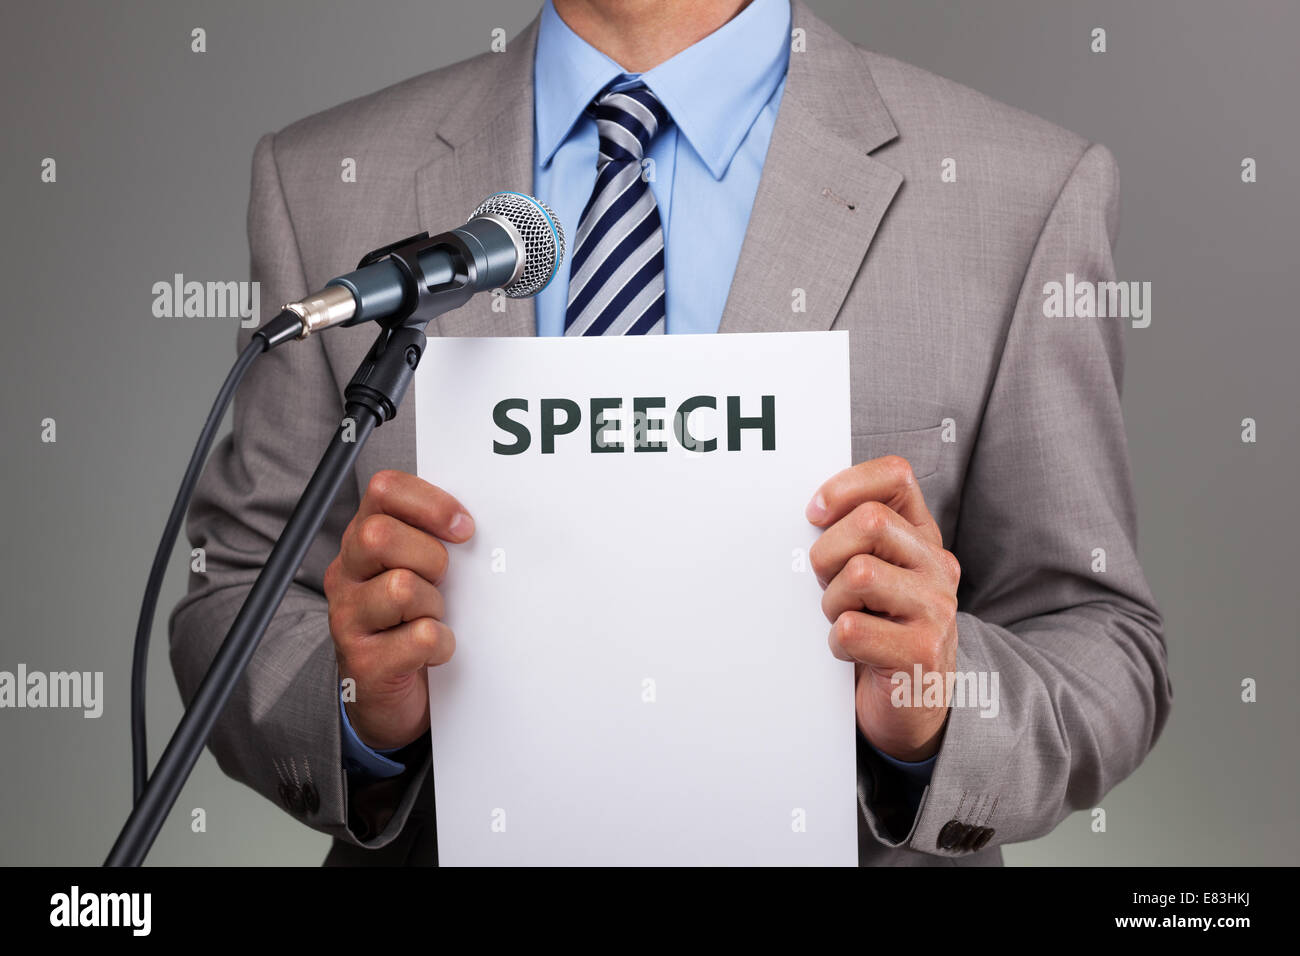 Speech with microphone - Stock Image